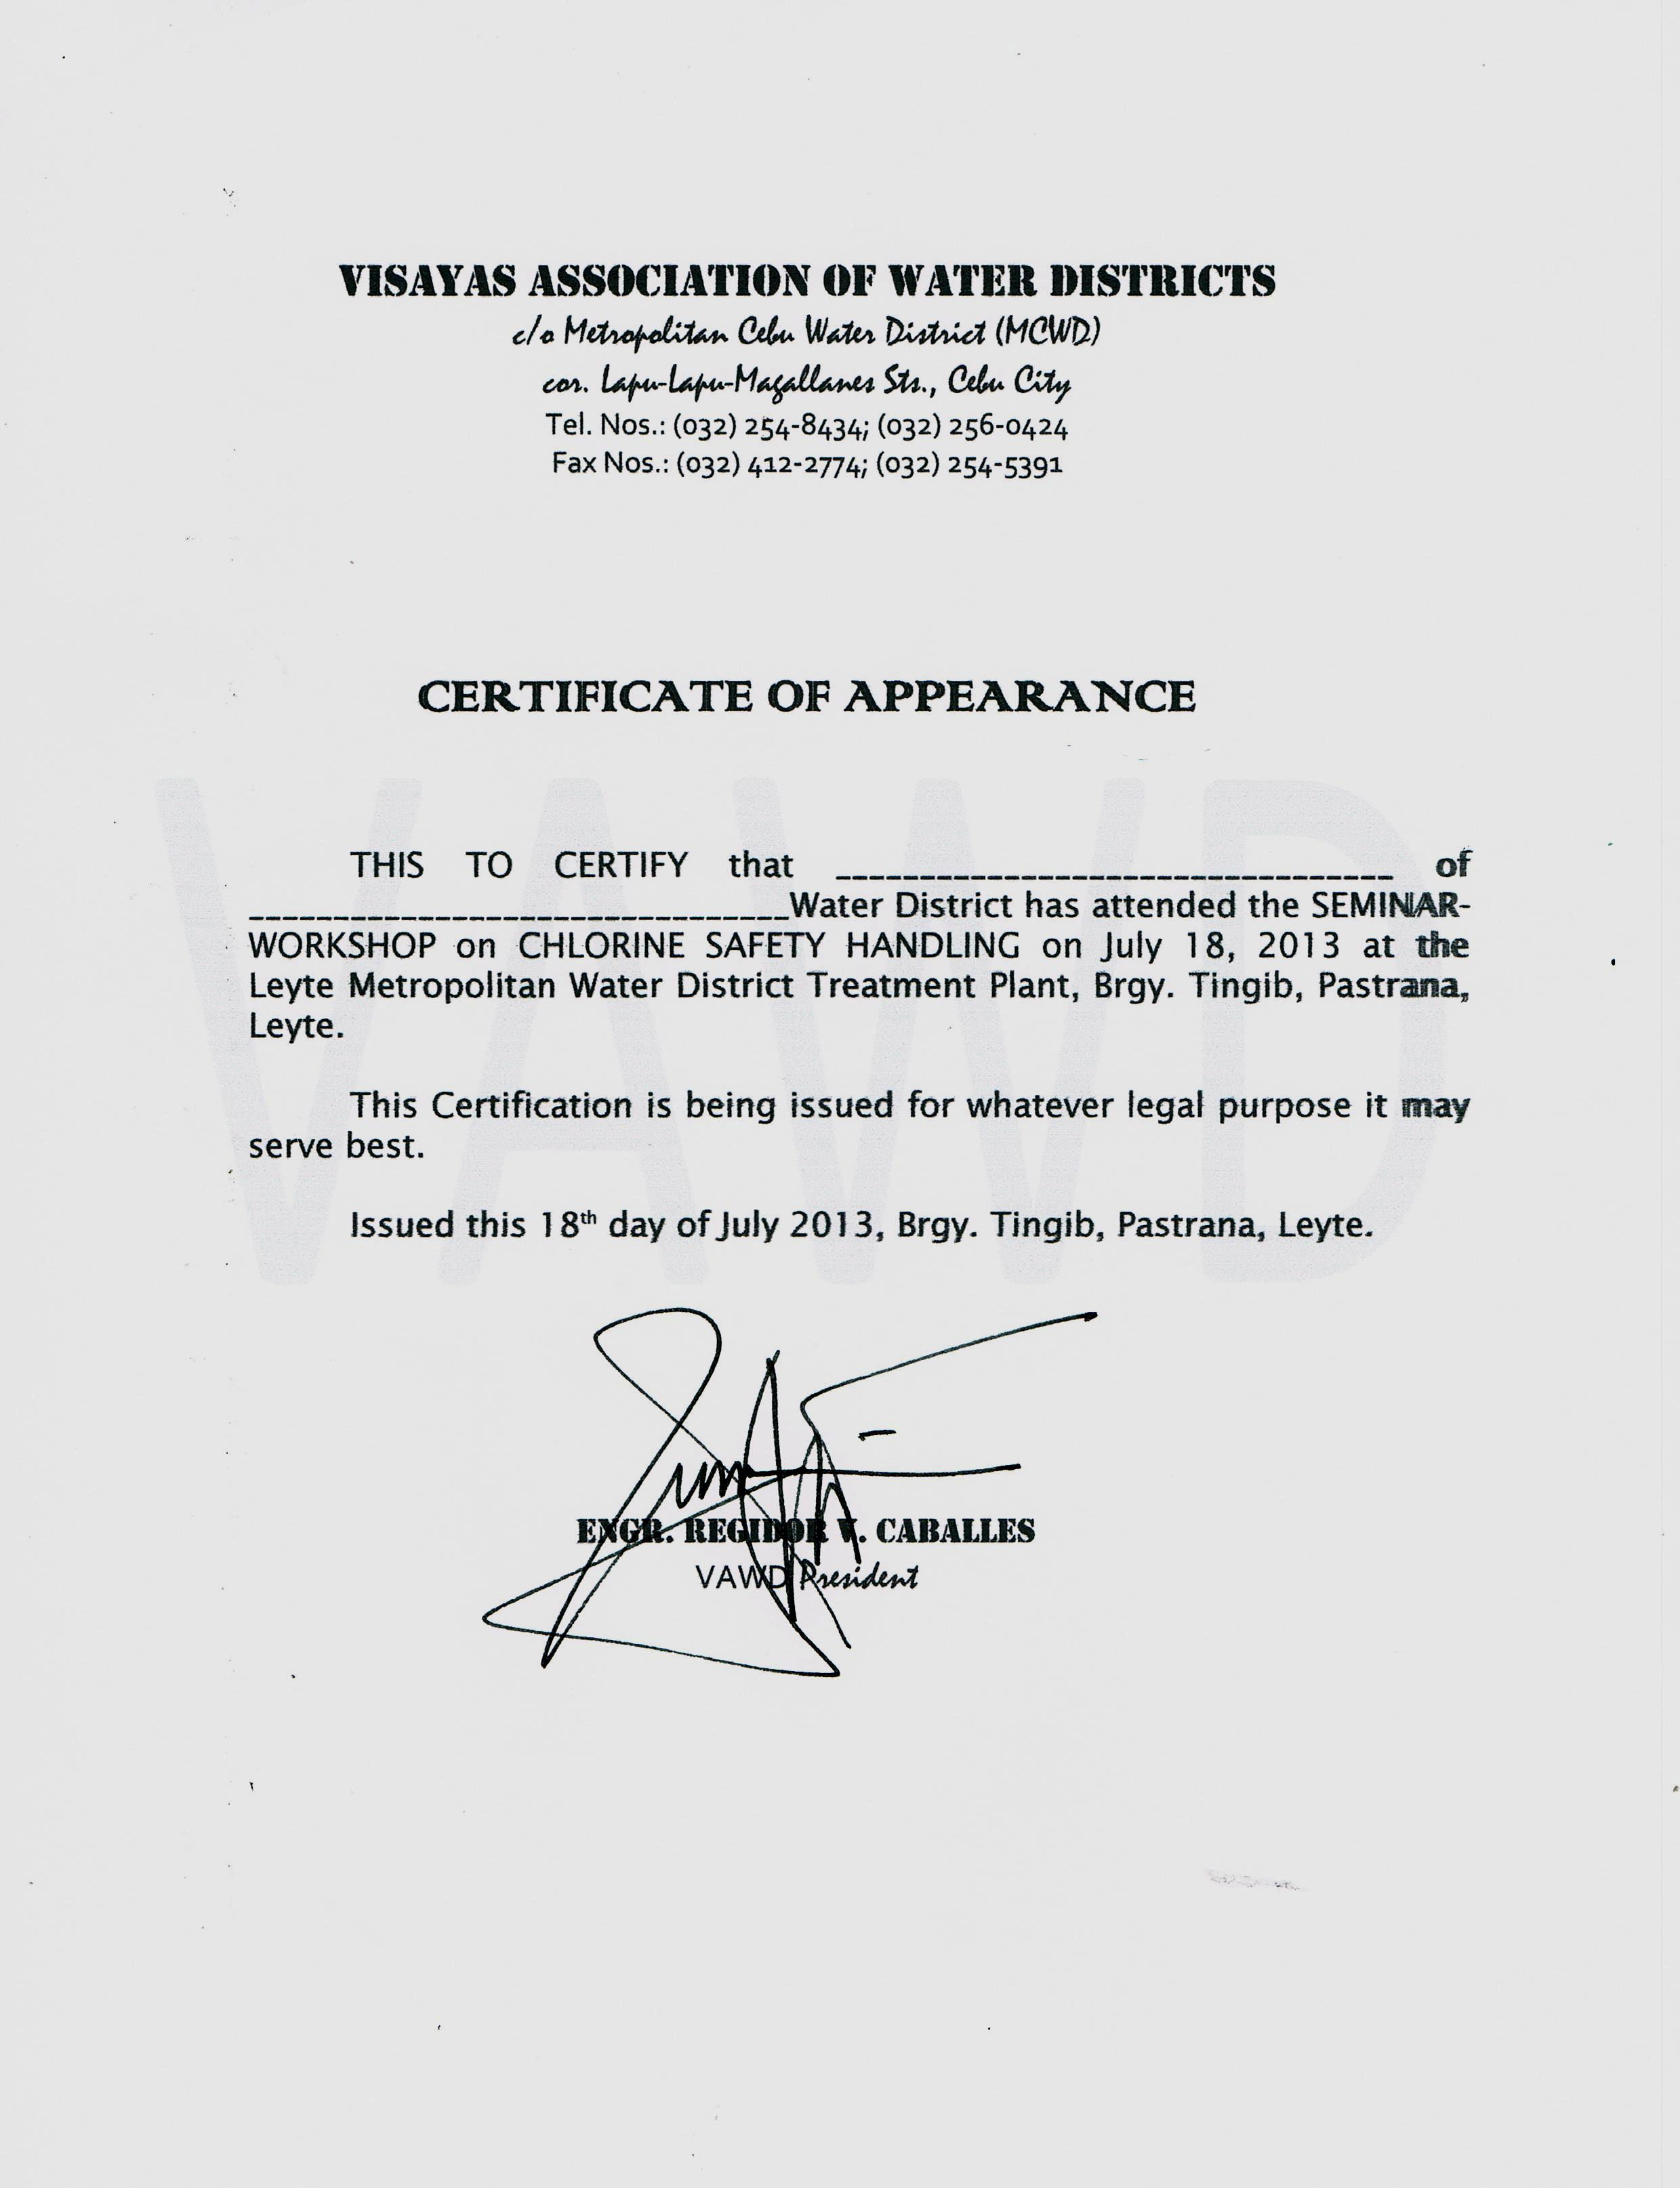 Sample certificate of appearance template image collections other gallery of sample certificate of appearance template yelopaper Choice Image